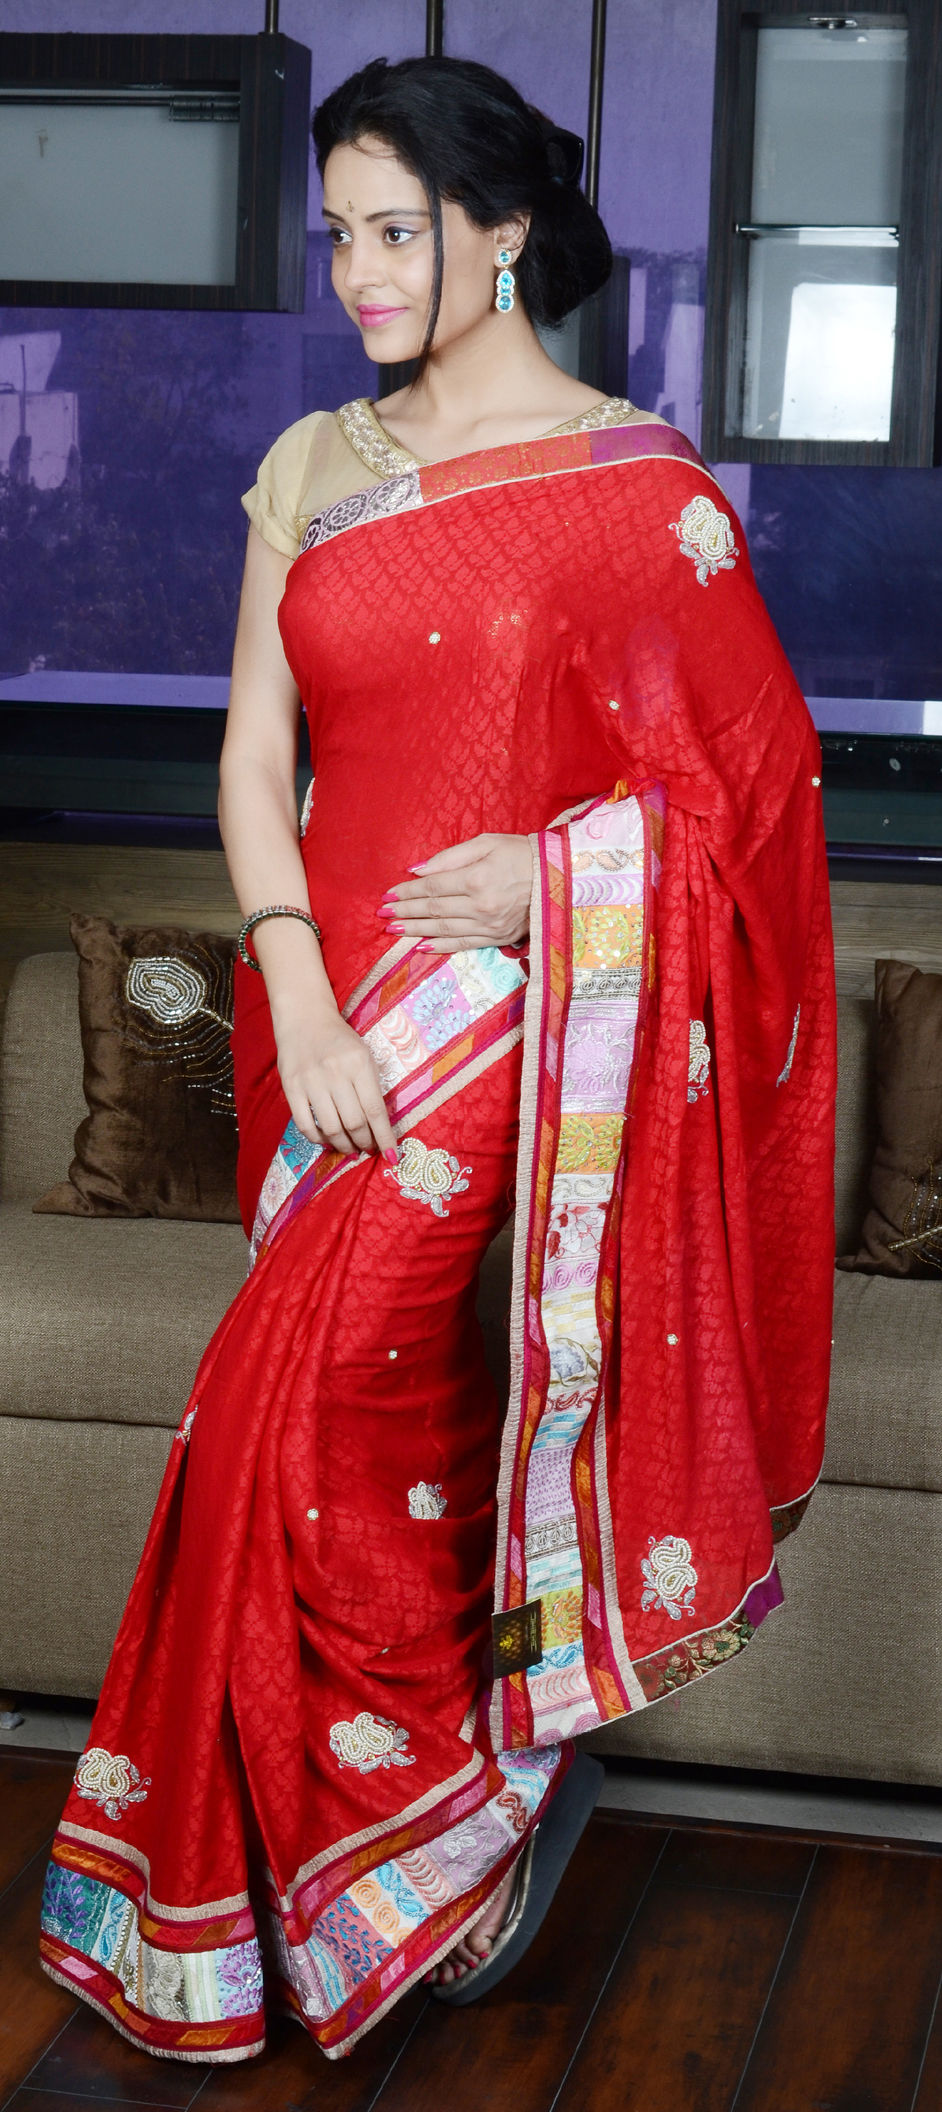 154109f85174 744183: Red and Maroon color family Bridal Wedding Sarees with ...